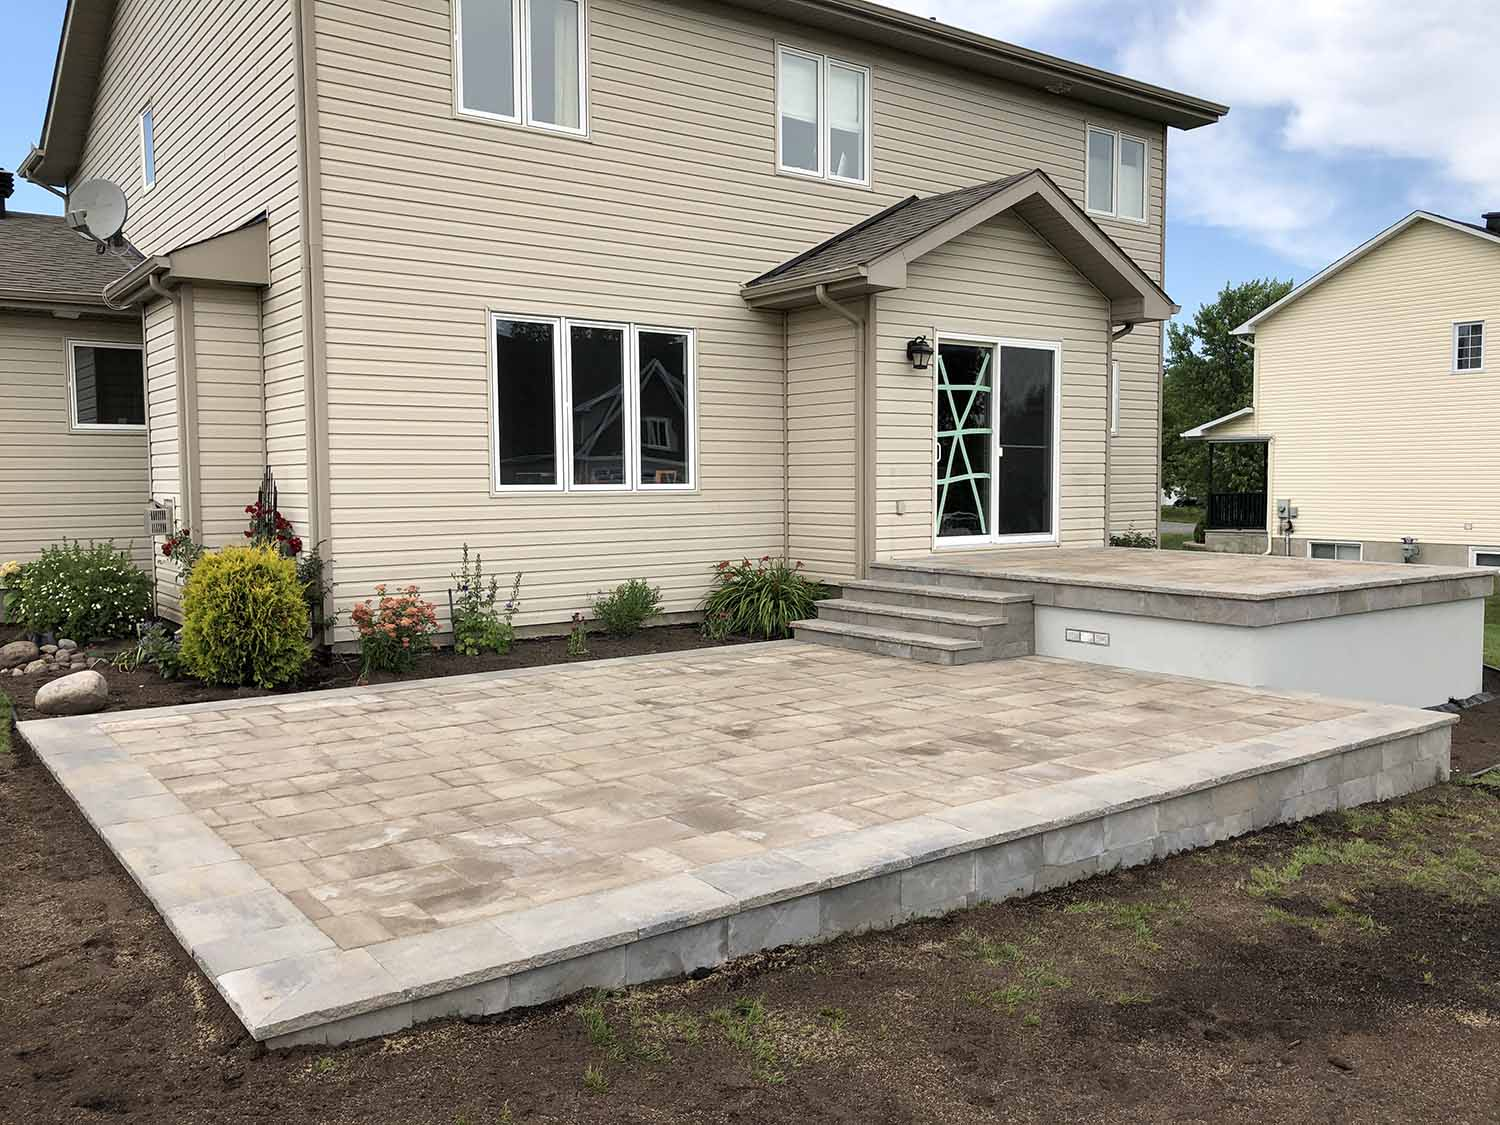 Multi level framed deck with paver stone surface and fascia board.